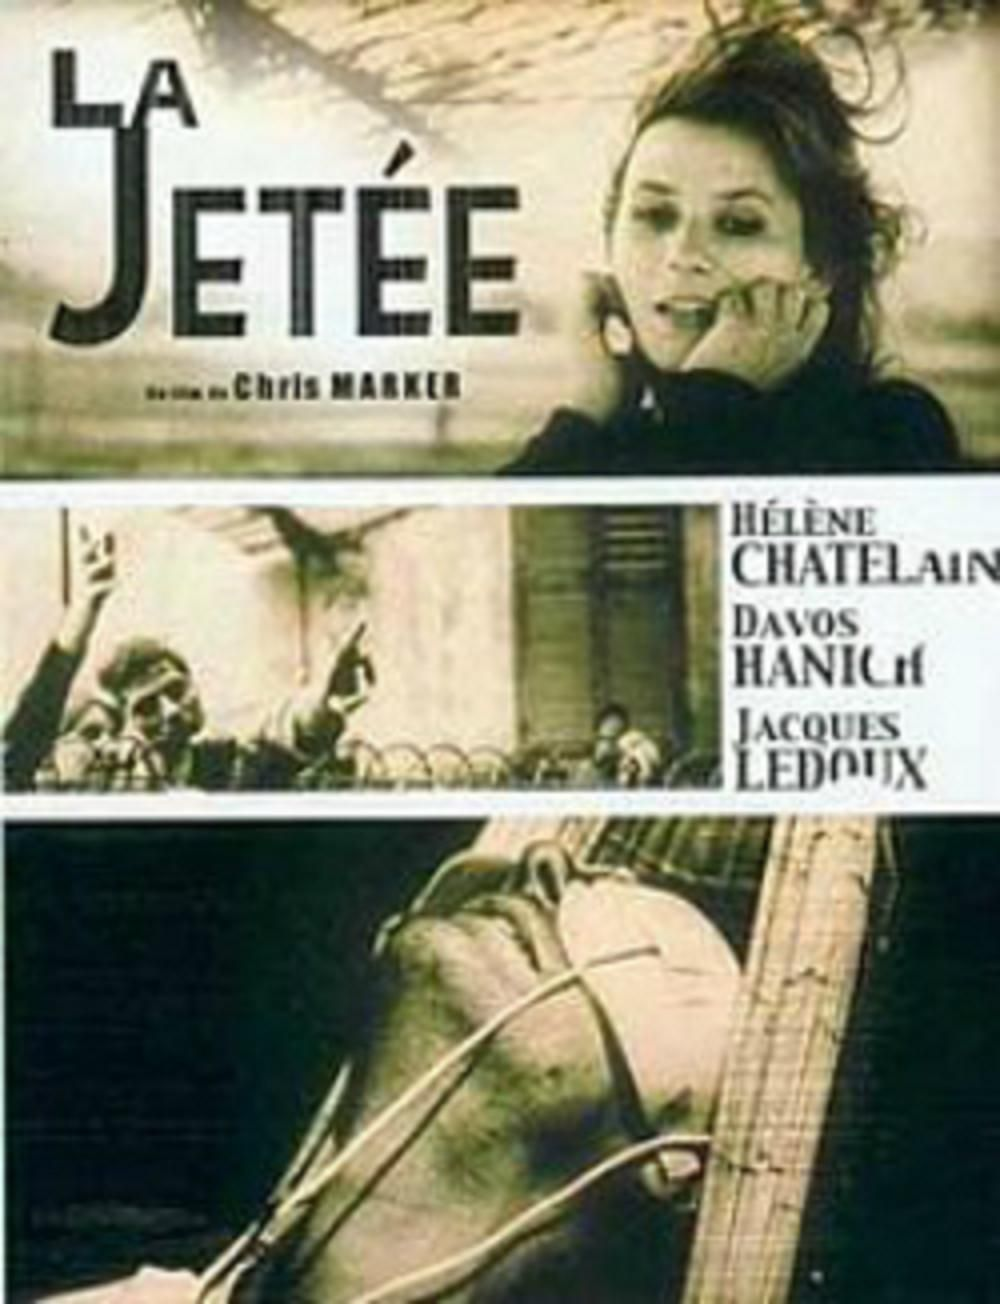 Hopefully the republished Temporal Anomalies in La Jetée http://www.mjyoung.net/time/jetee.html is more entertaining than the film itself.